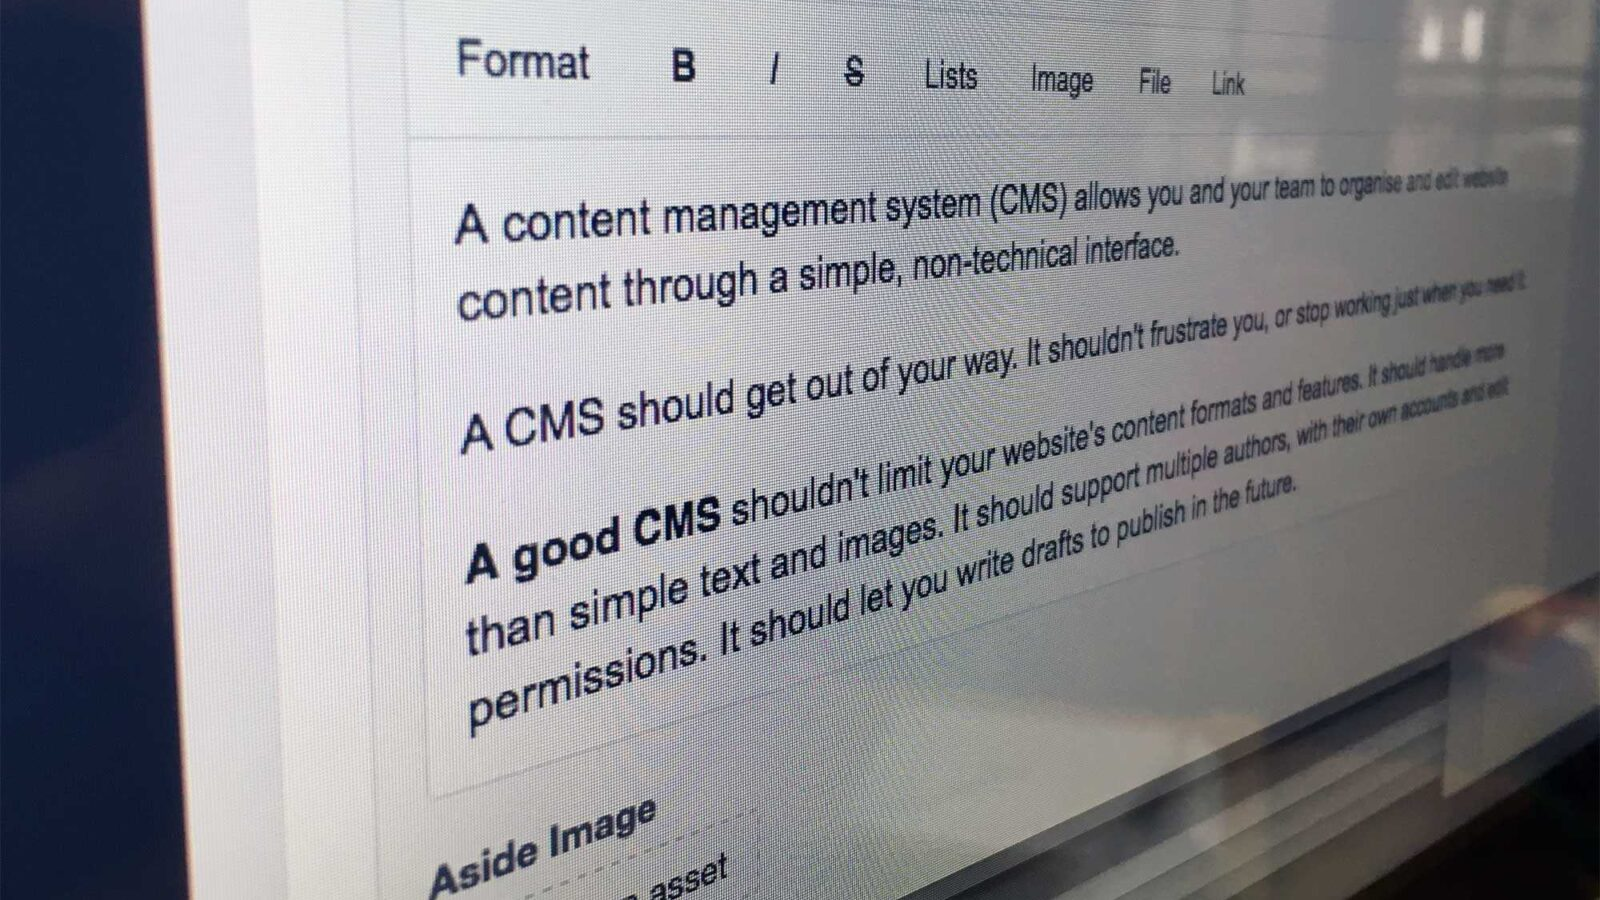 Craft CMS screenshot taken at an angle showing the rich text editor